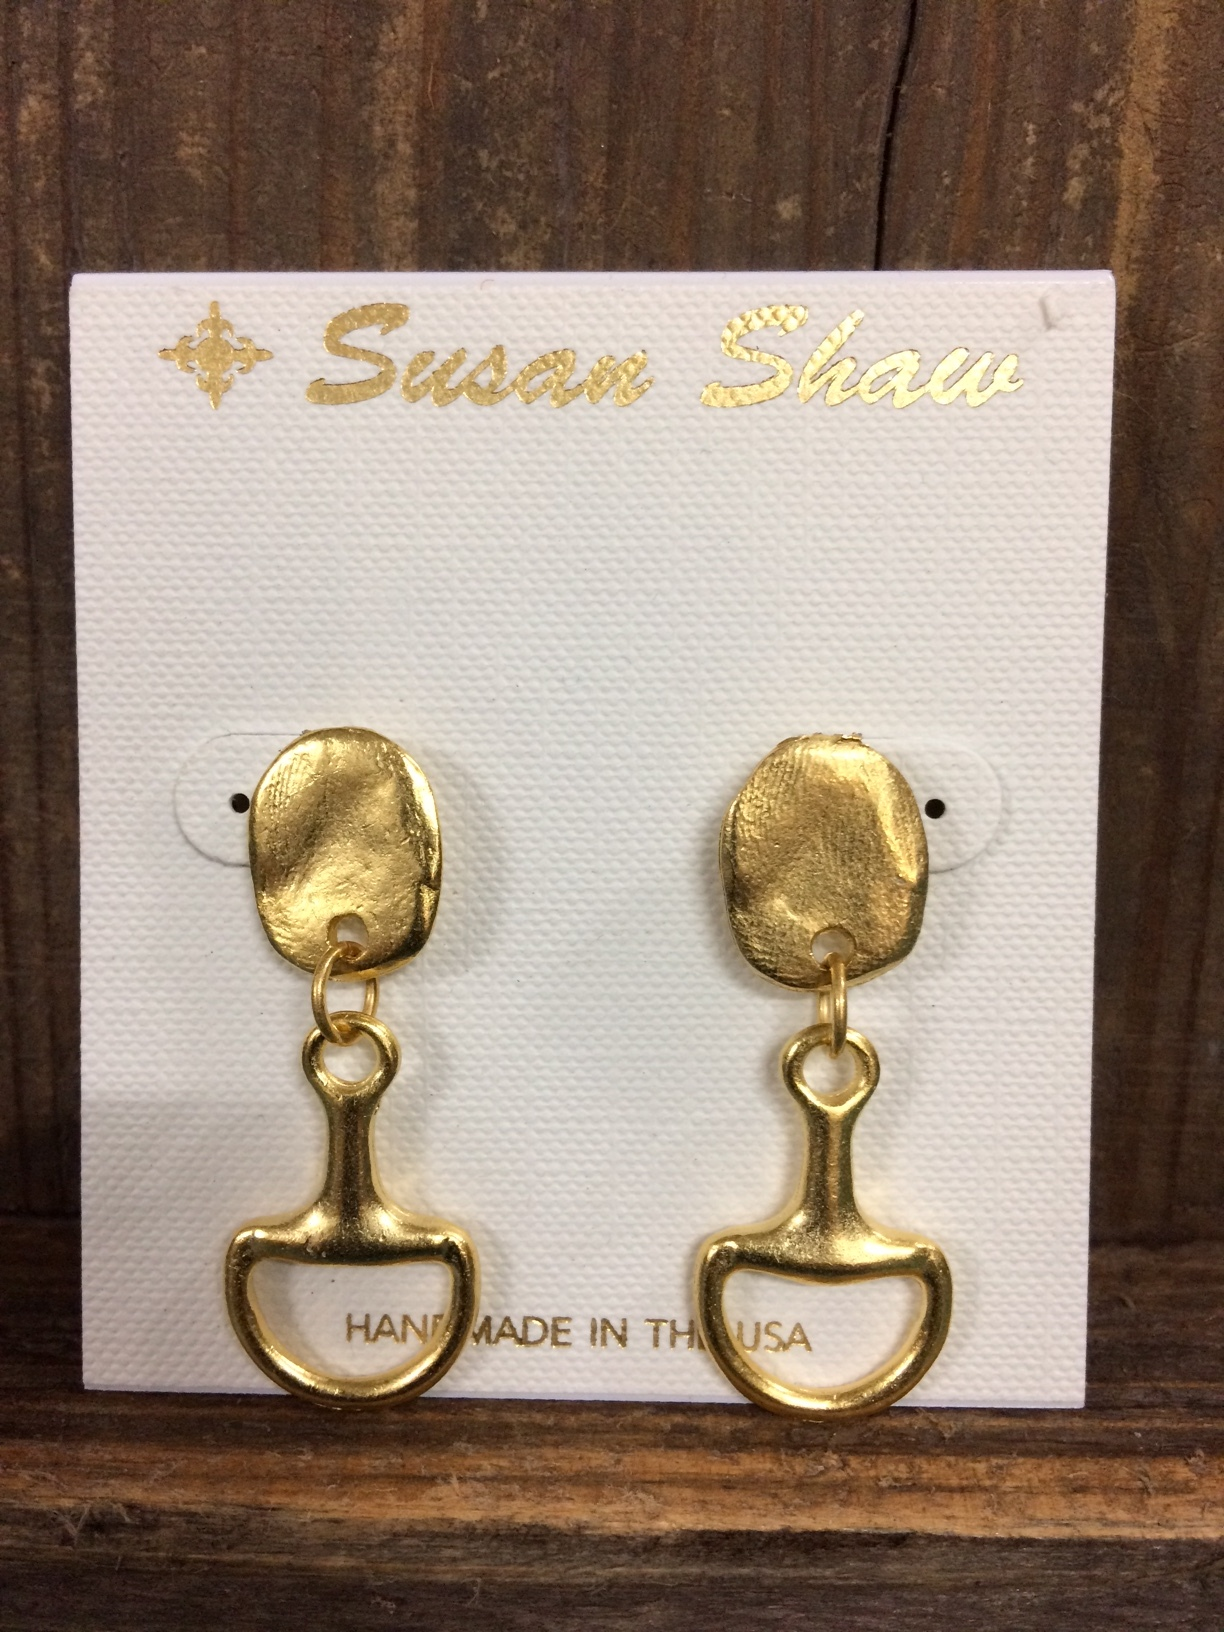 susan-shaw-equestrian-earrings-gold-snaffle